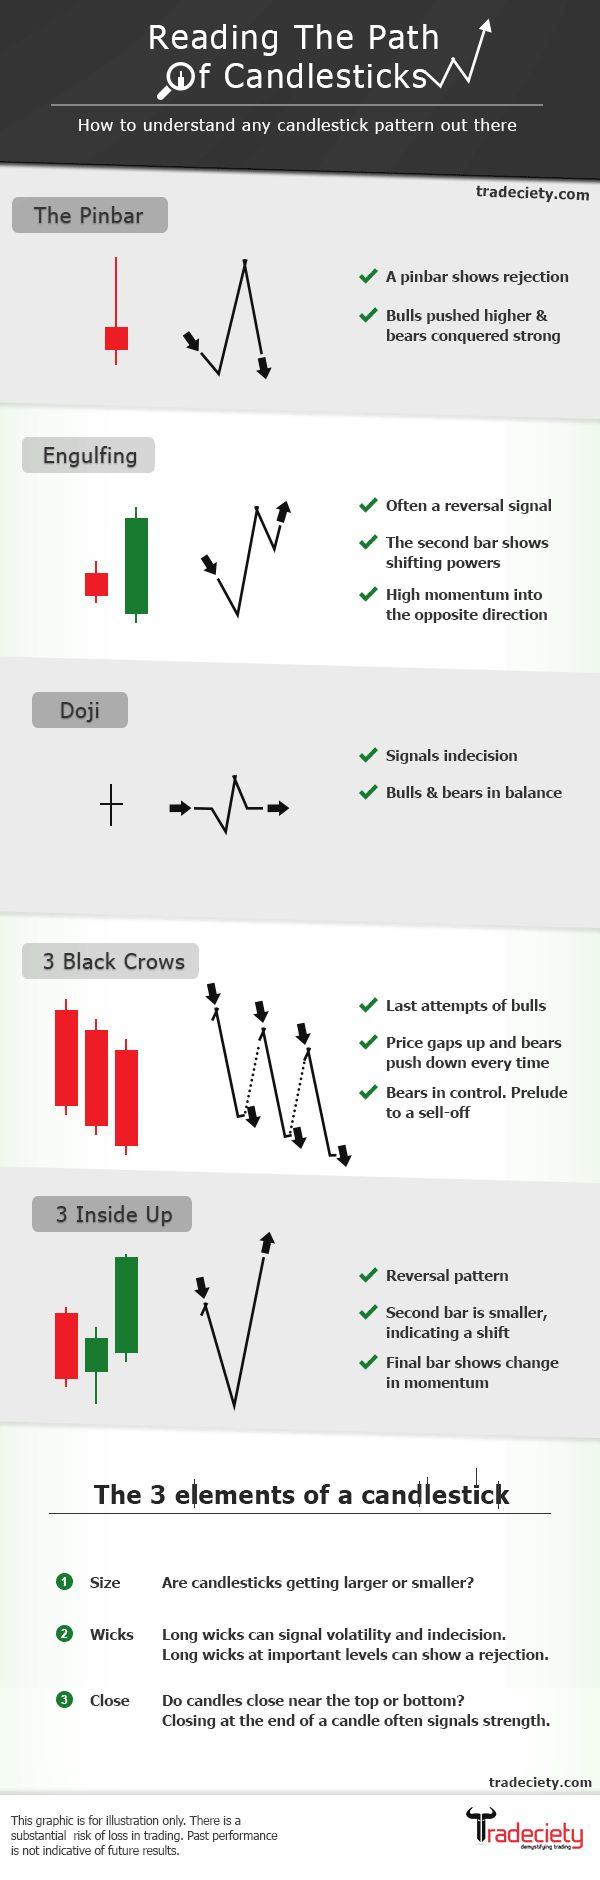 Reading The Path Of Candlesticks: http://www.tradeciety.com/trading-tips-candlestick-patterns #forex #candlesticks #StockMarketTips